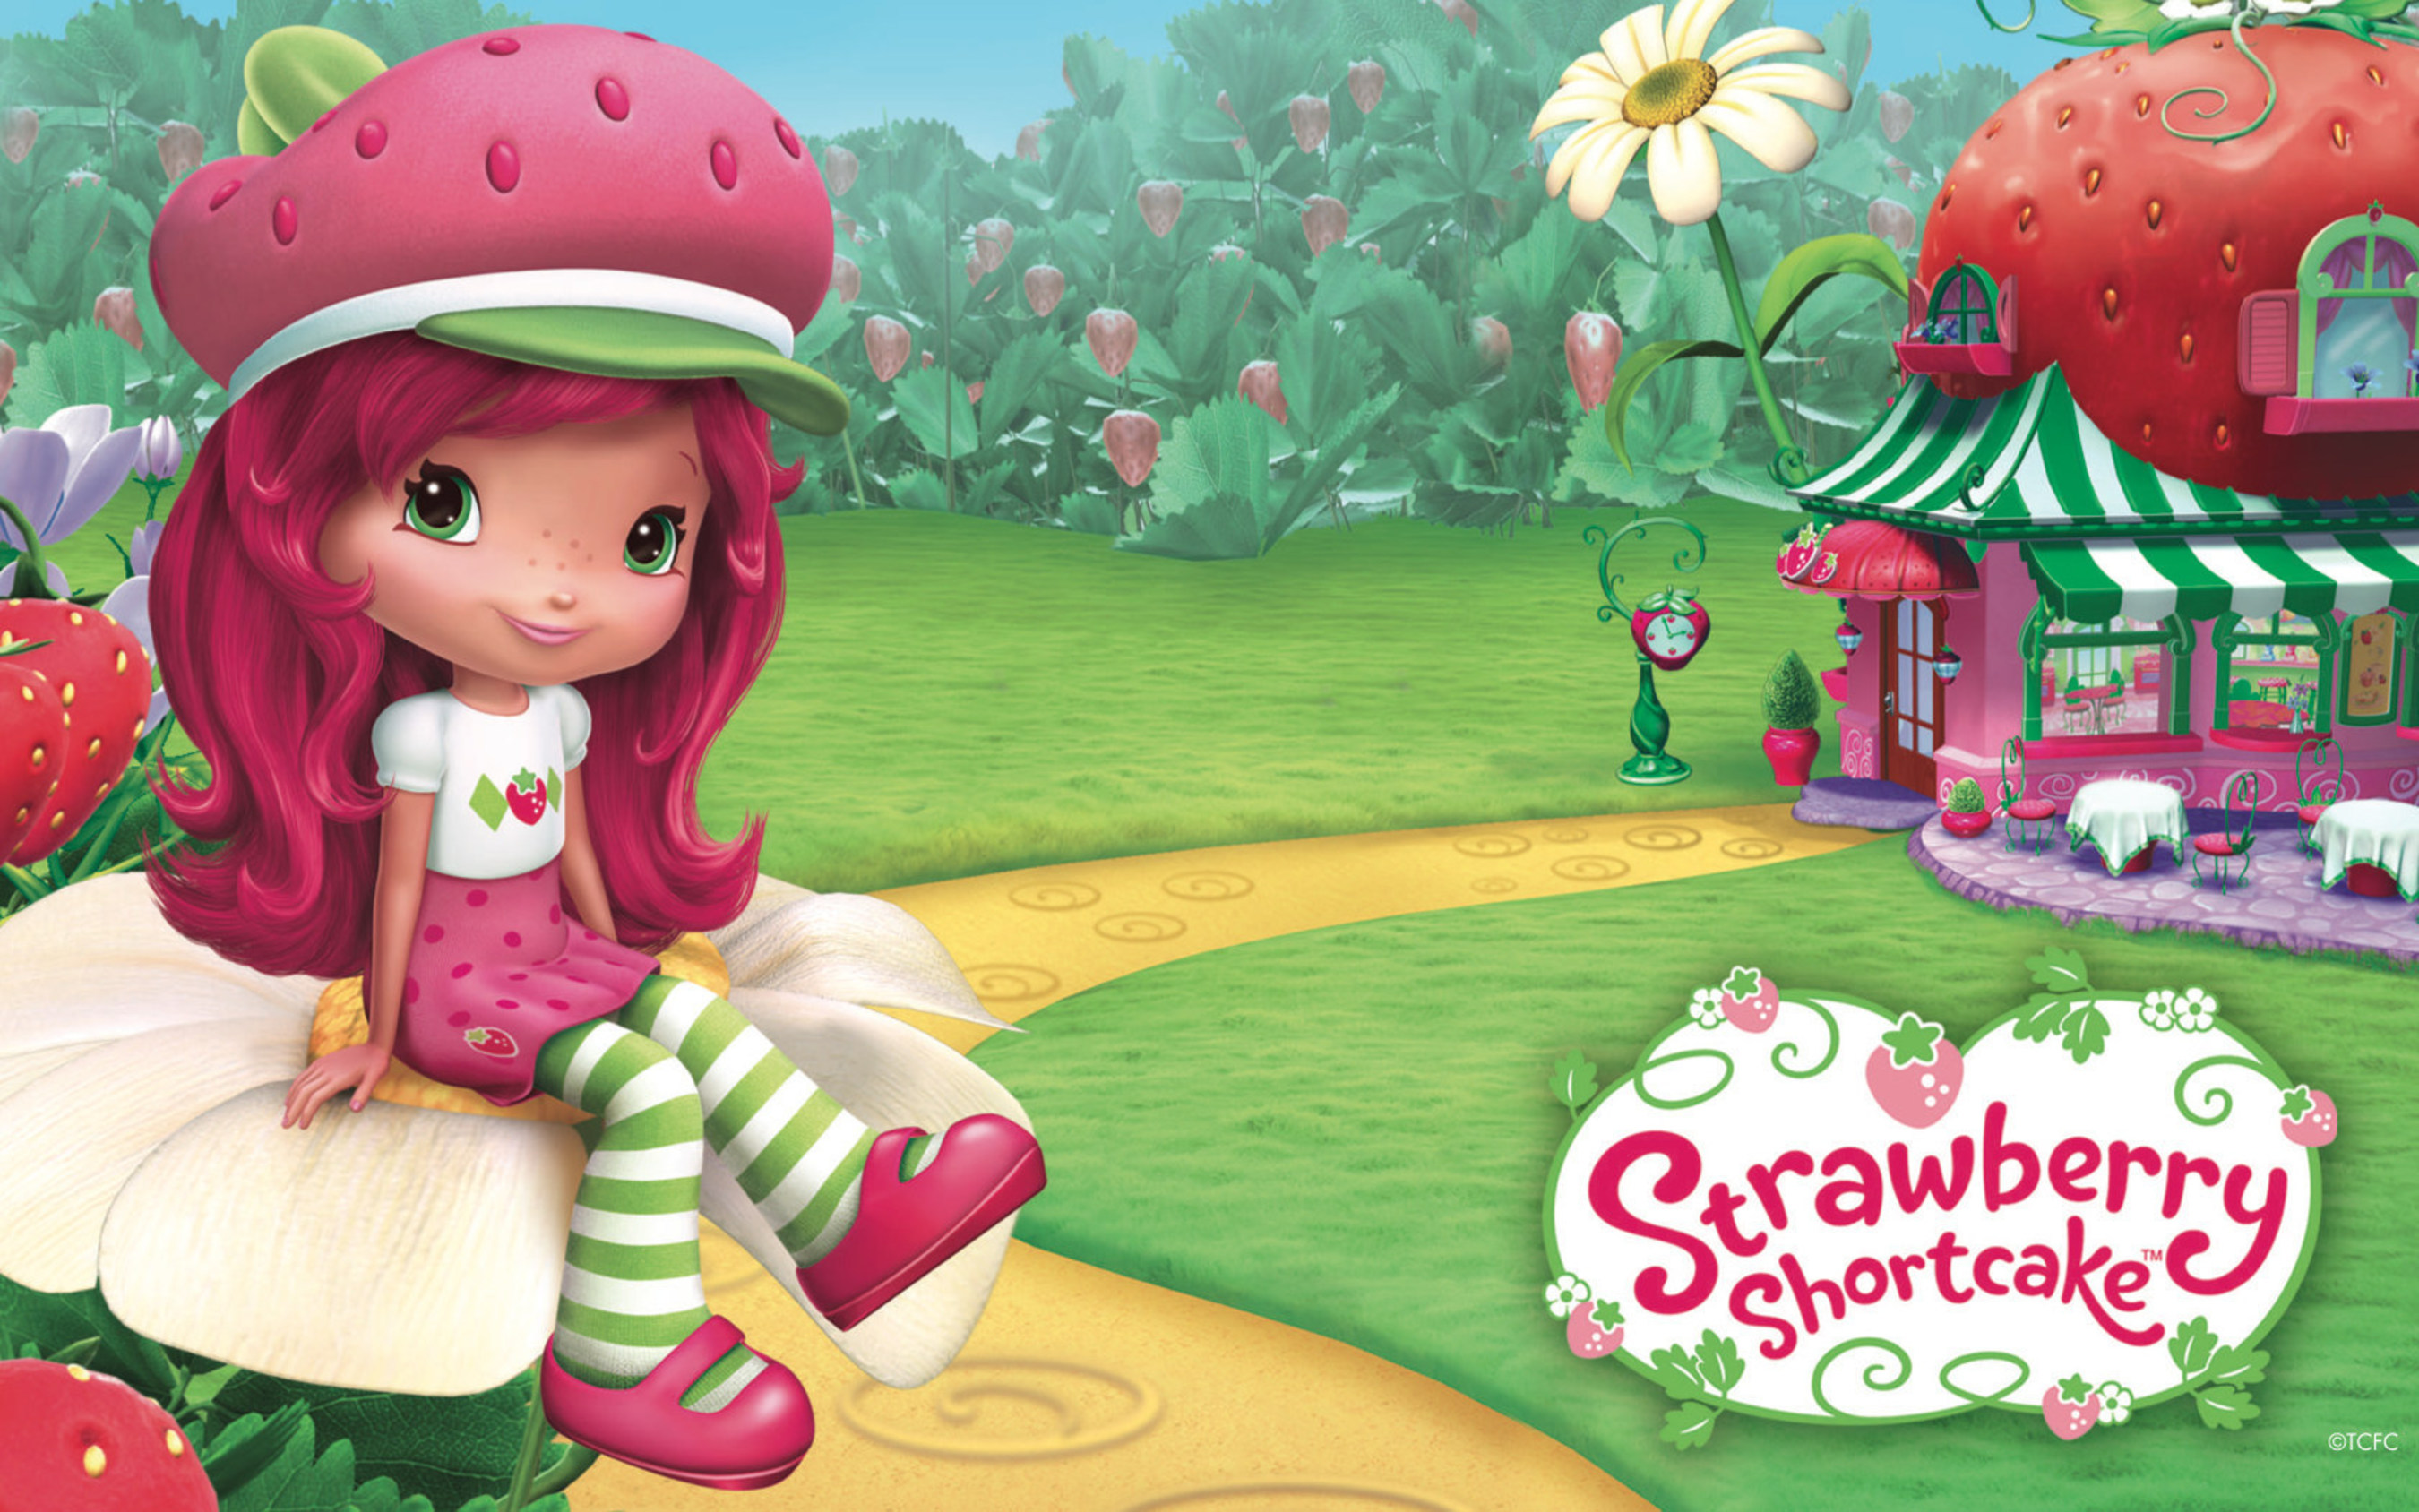 Iconix Announces Definitive Agreement To Acquire Strawberry